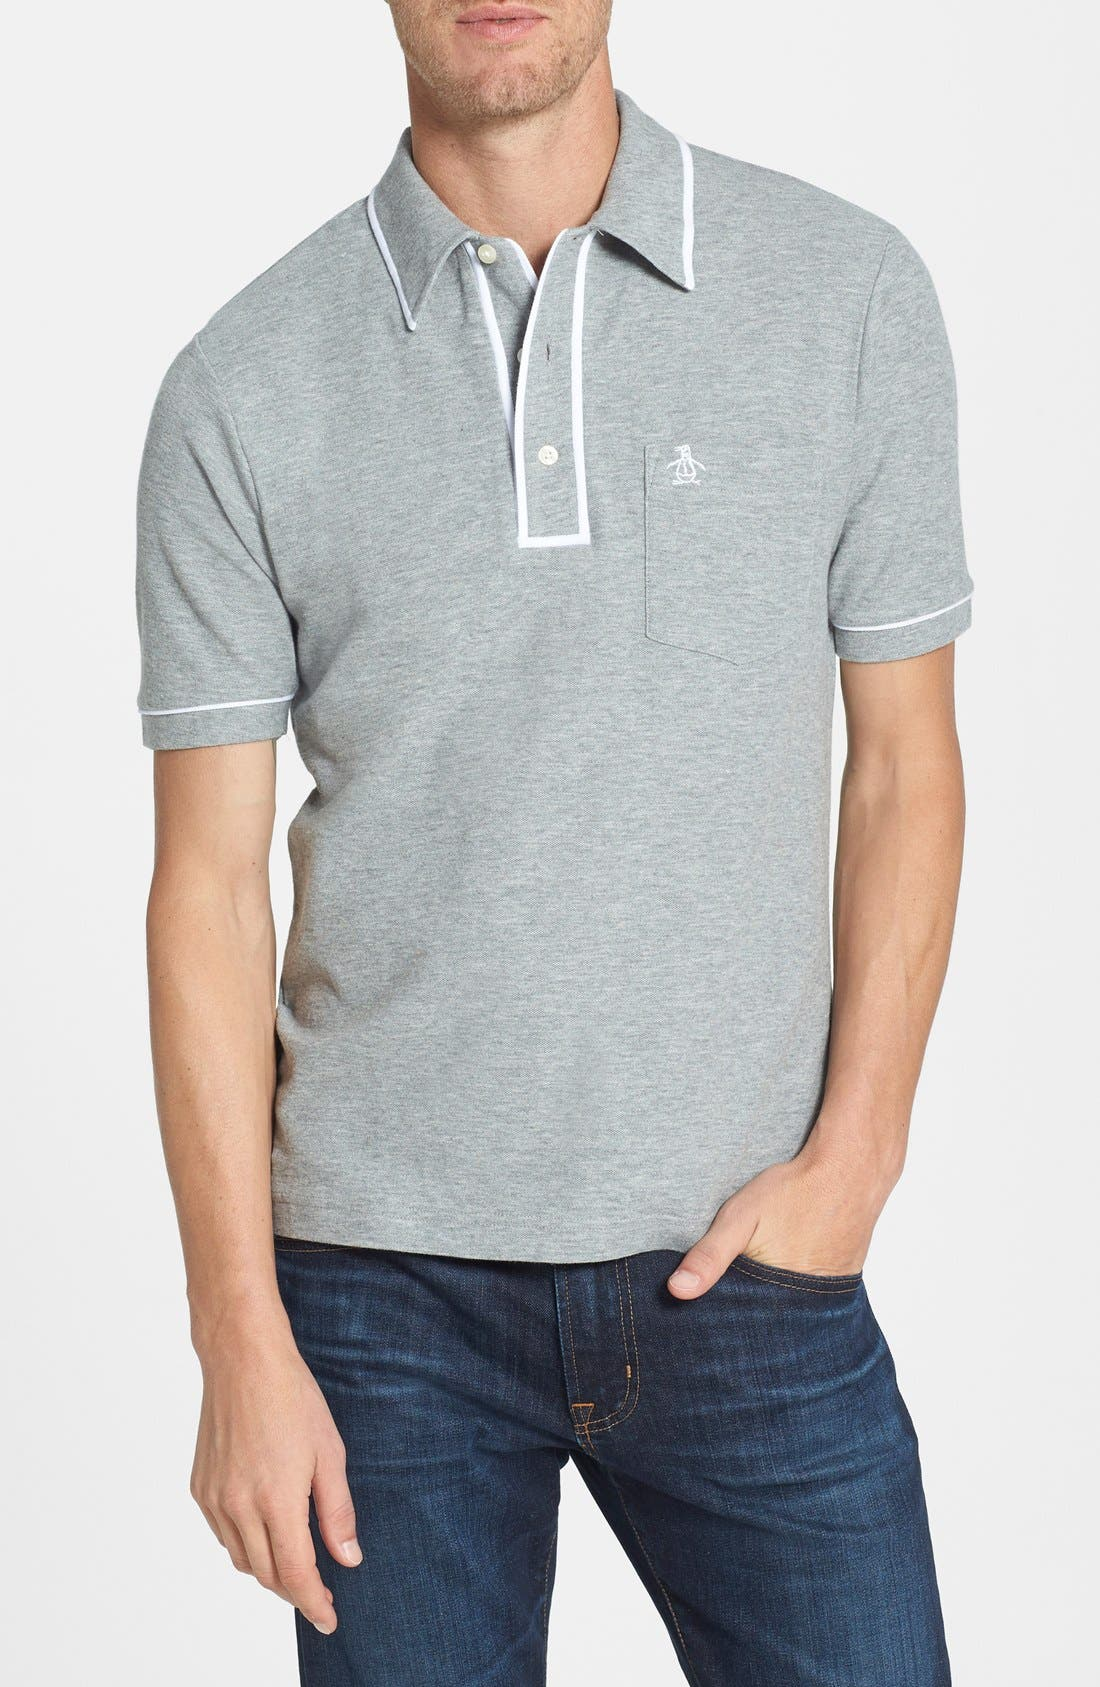 Main Image - Original Penguin 'The Earl' Trim Fit Piqué Polo